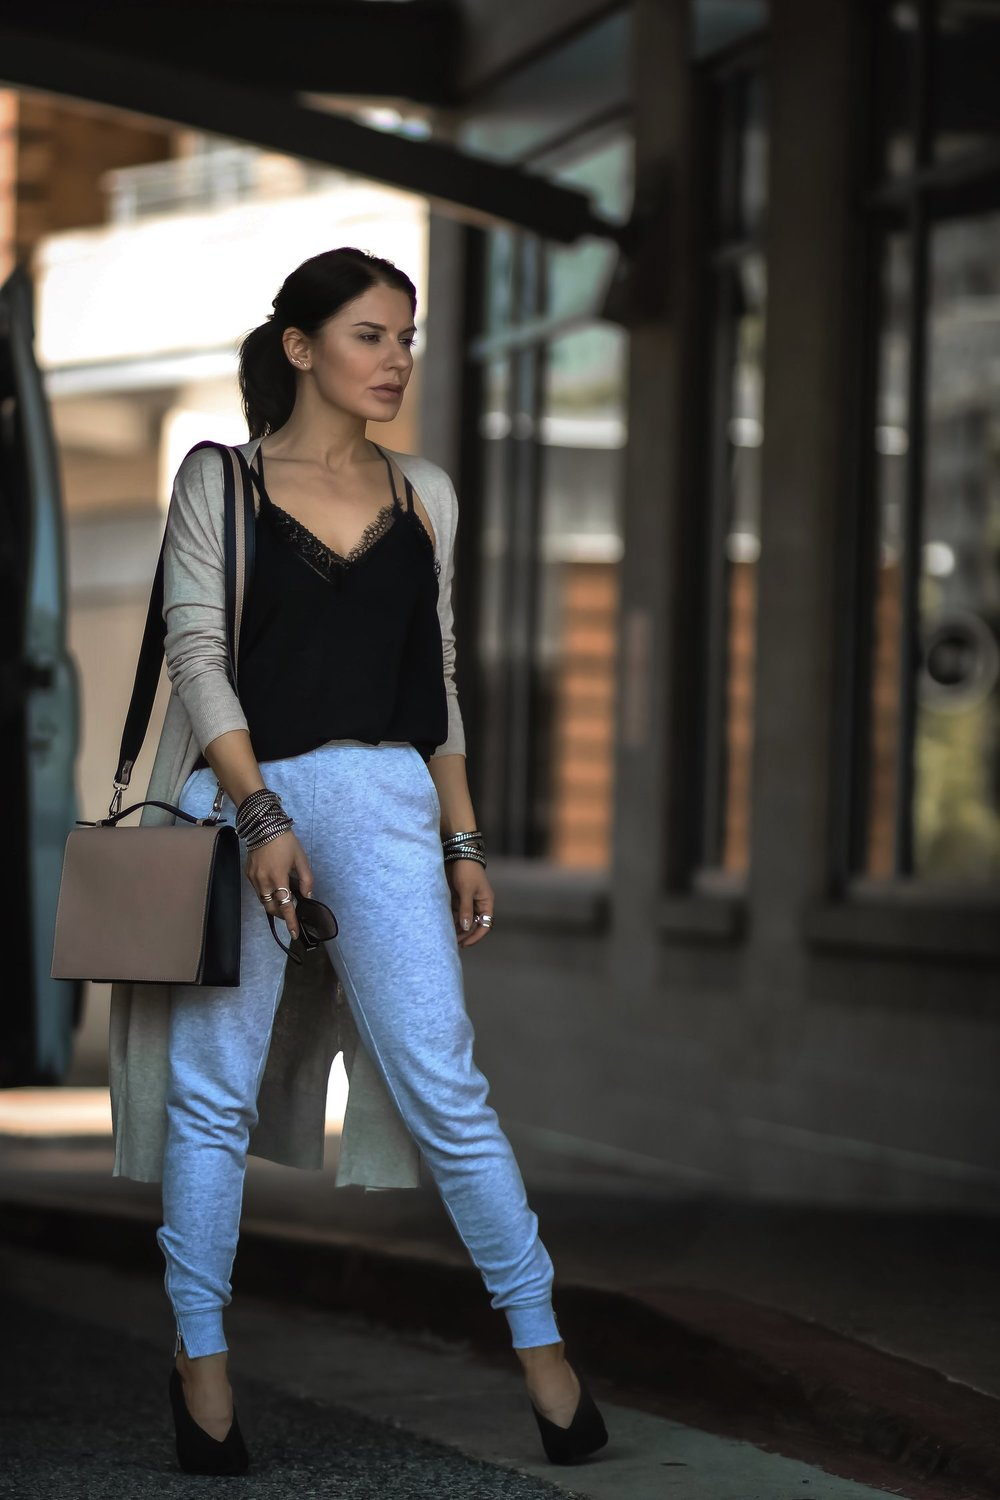 Isabel-Alexander-Old-Navy-tan-cardigan-athleisure-look-streetstyle.jpeg